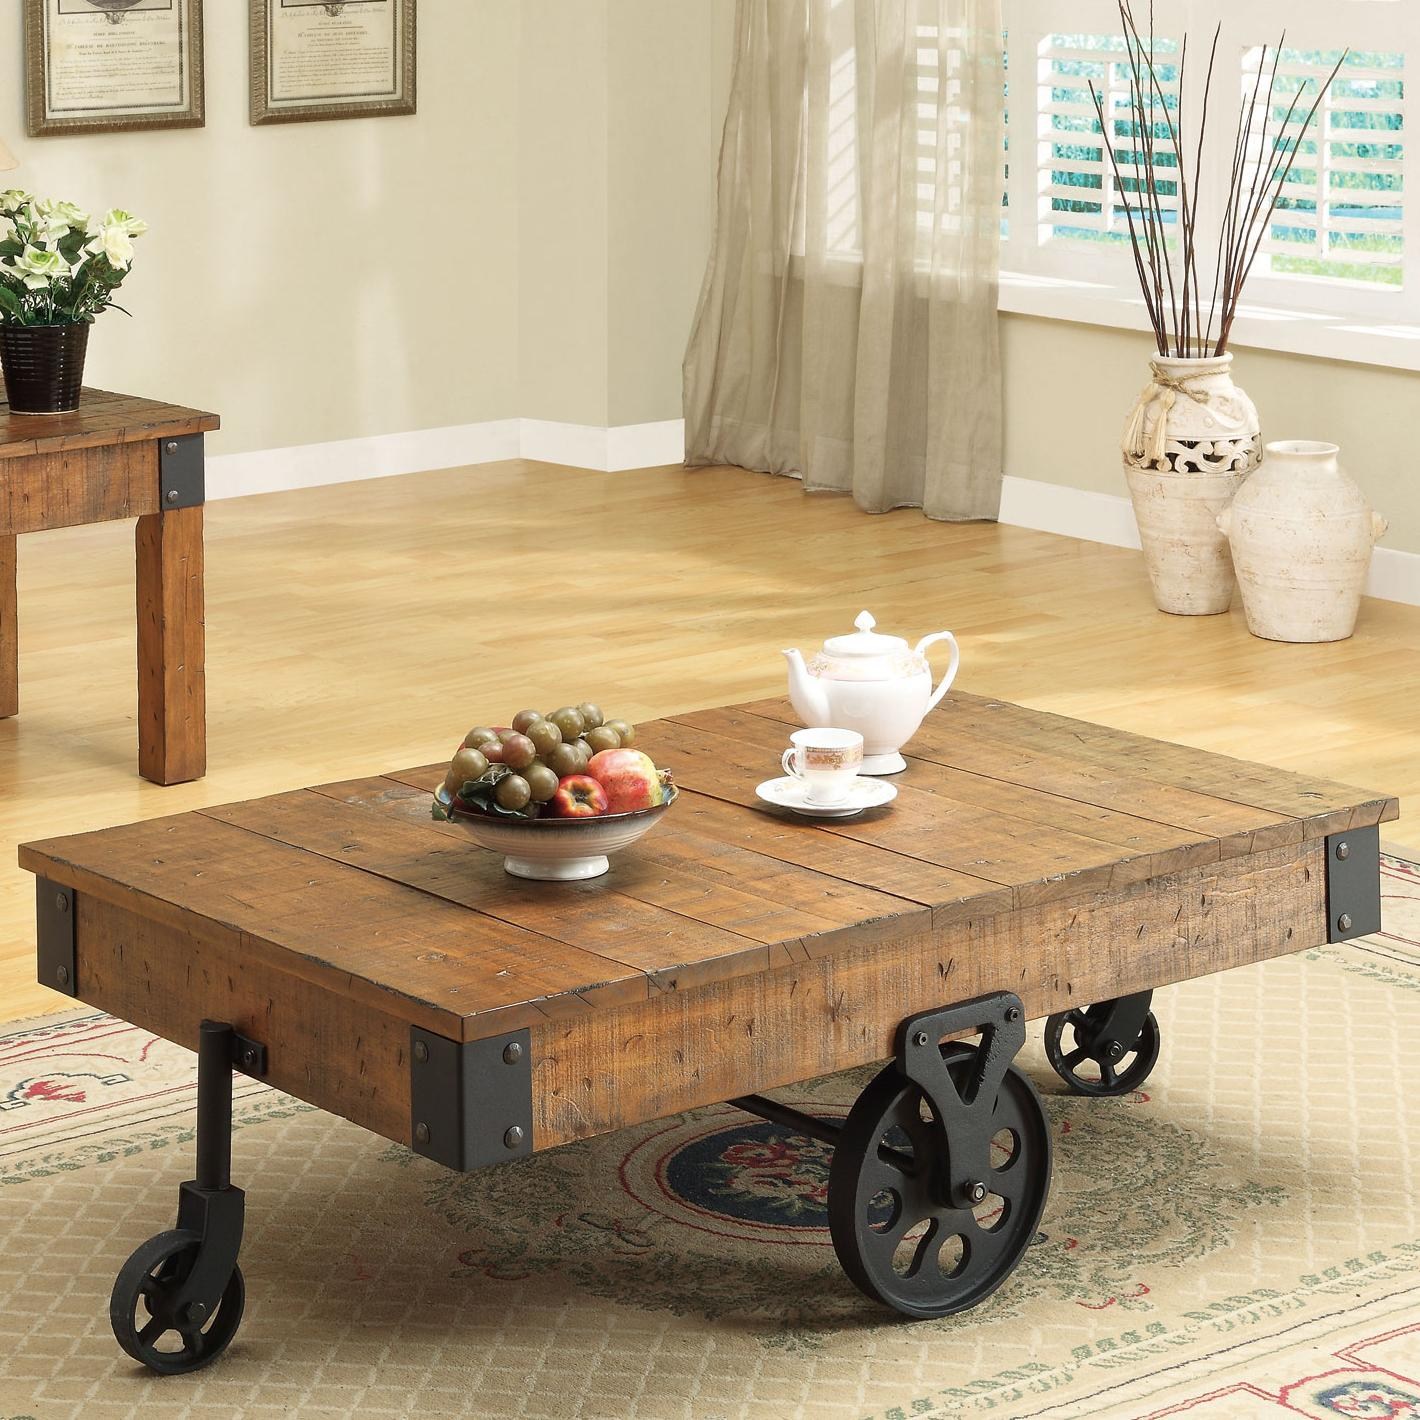 coaster accent tables distressed country wagon coffee table prime products color coas end small nightstands for bedroom wooden chair legs oak mission black gloss faux marble drum